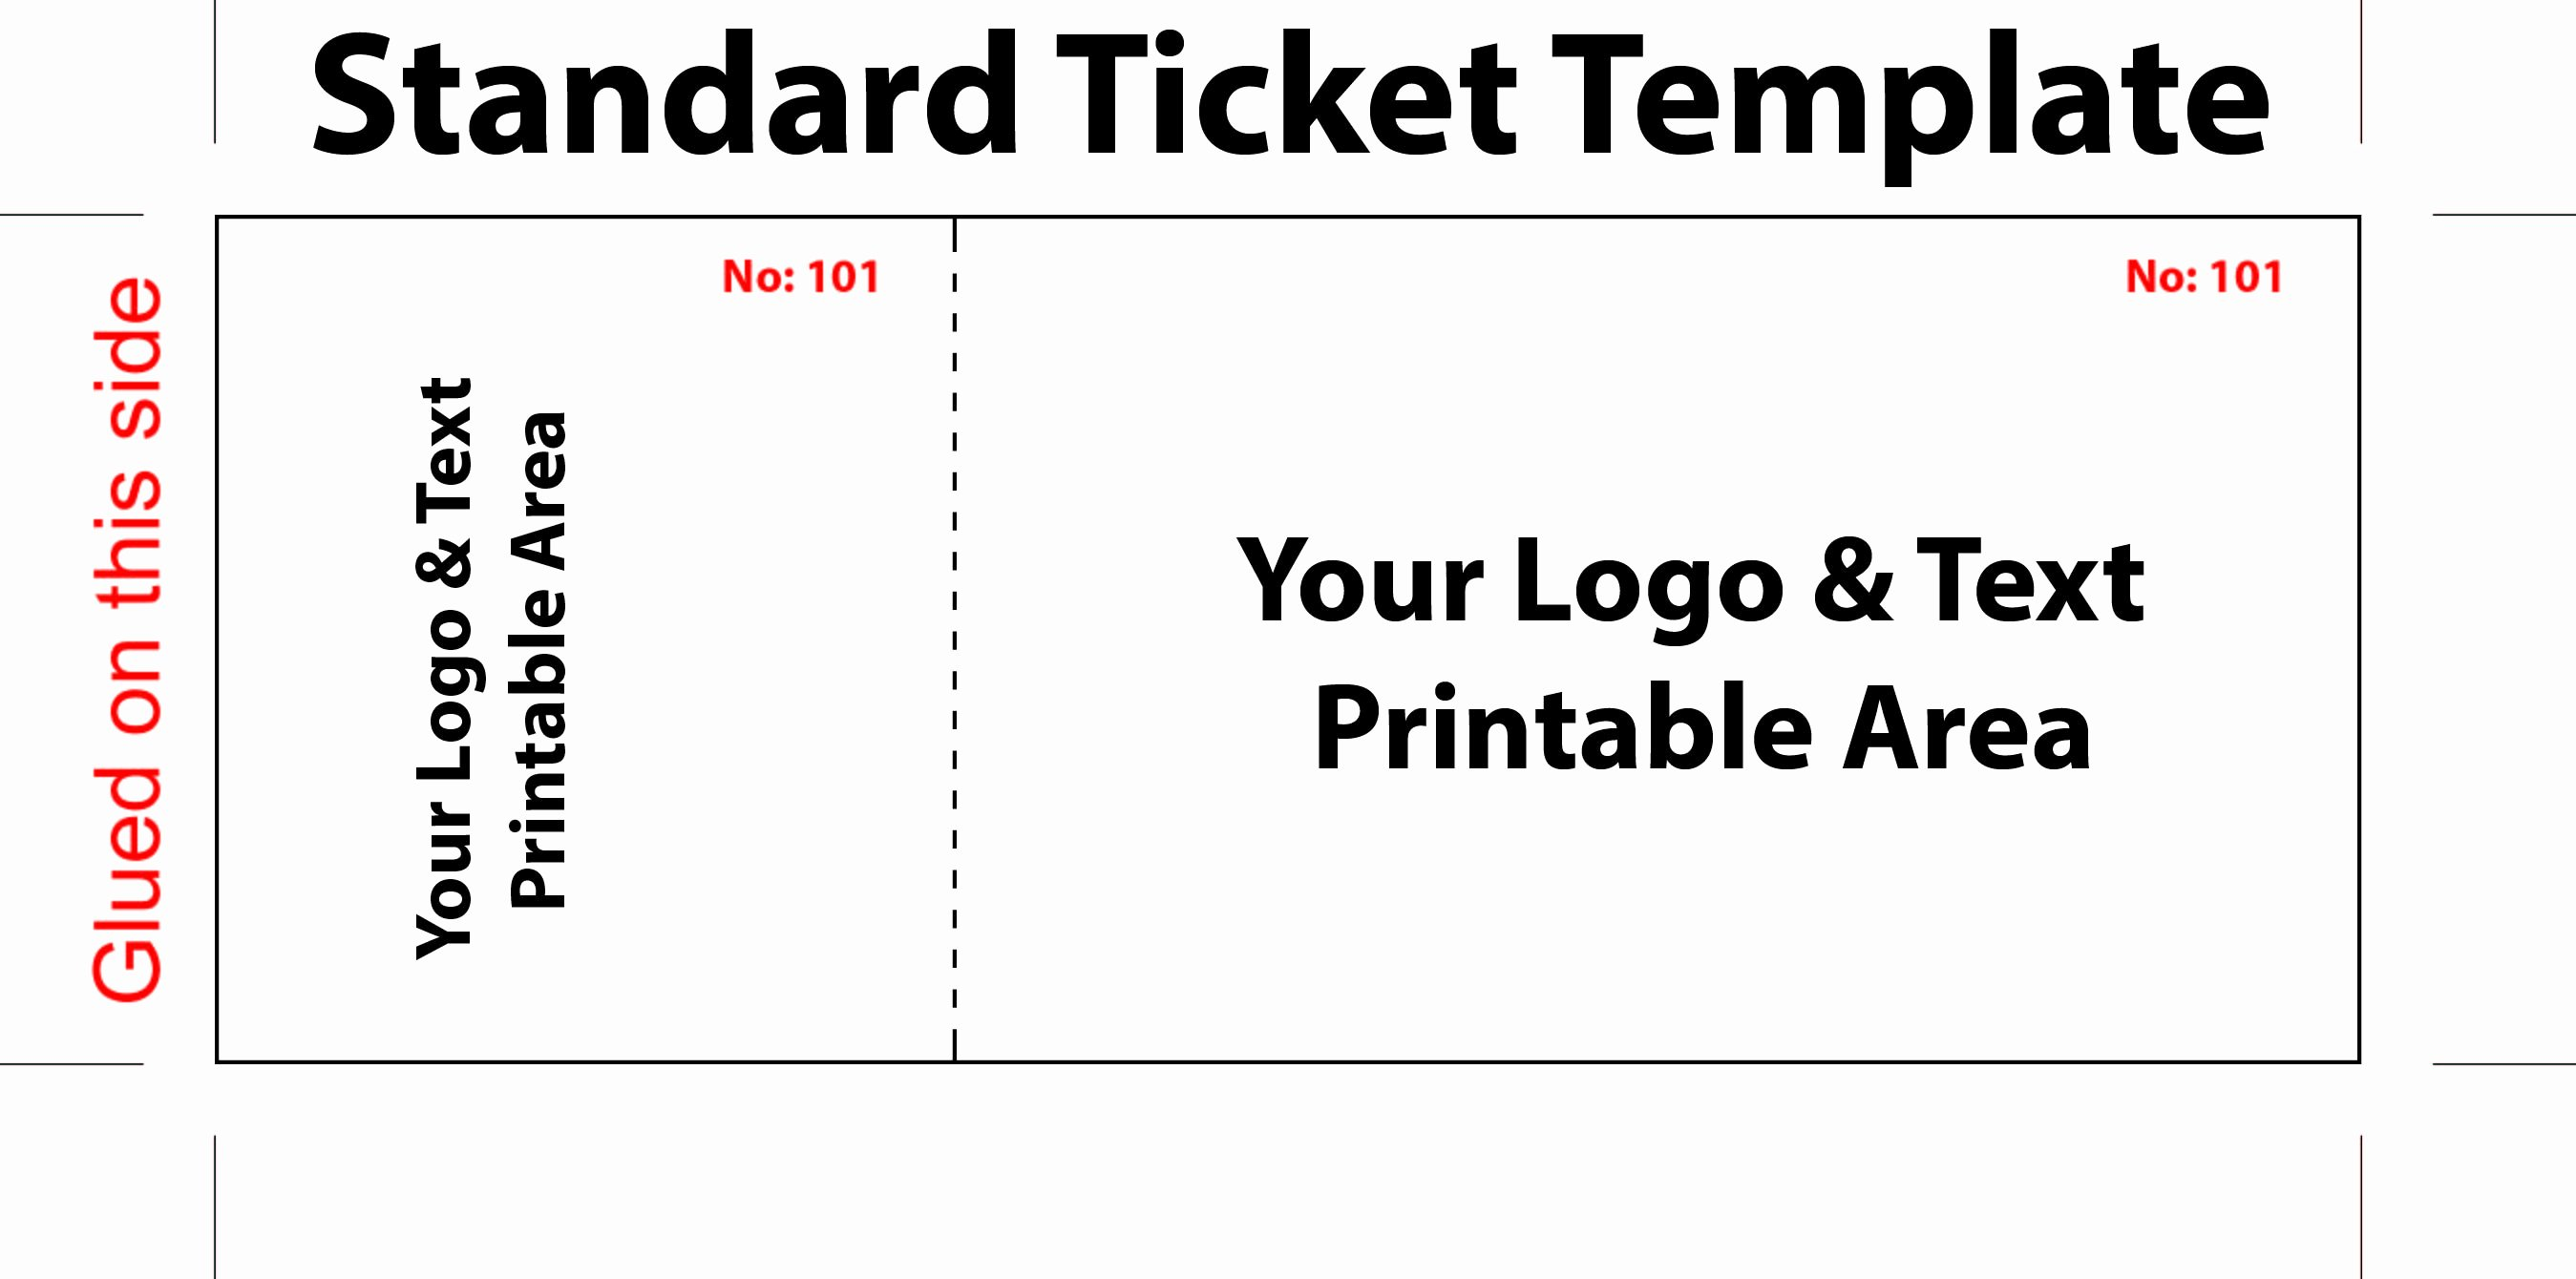 Free Ticket Template Word Beautiful Free Editable Standard Ticket Template Example for Concert